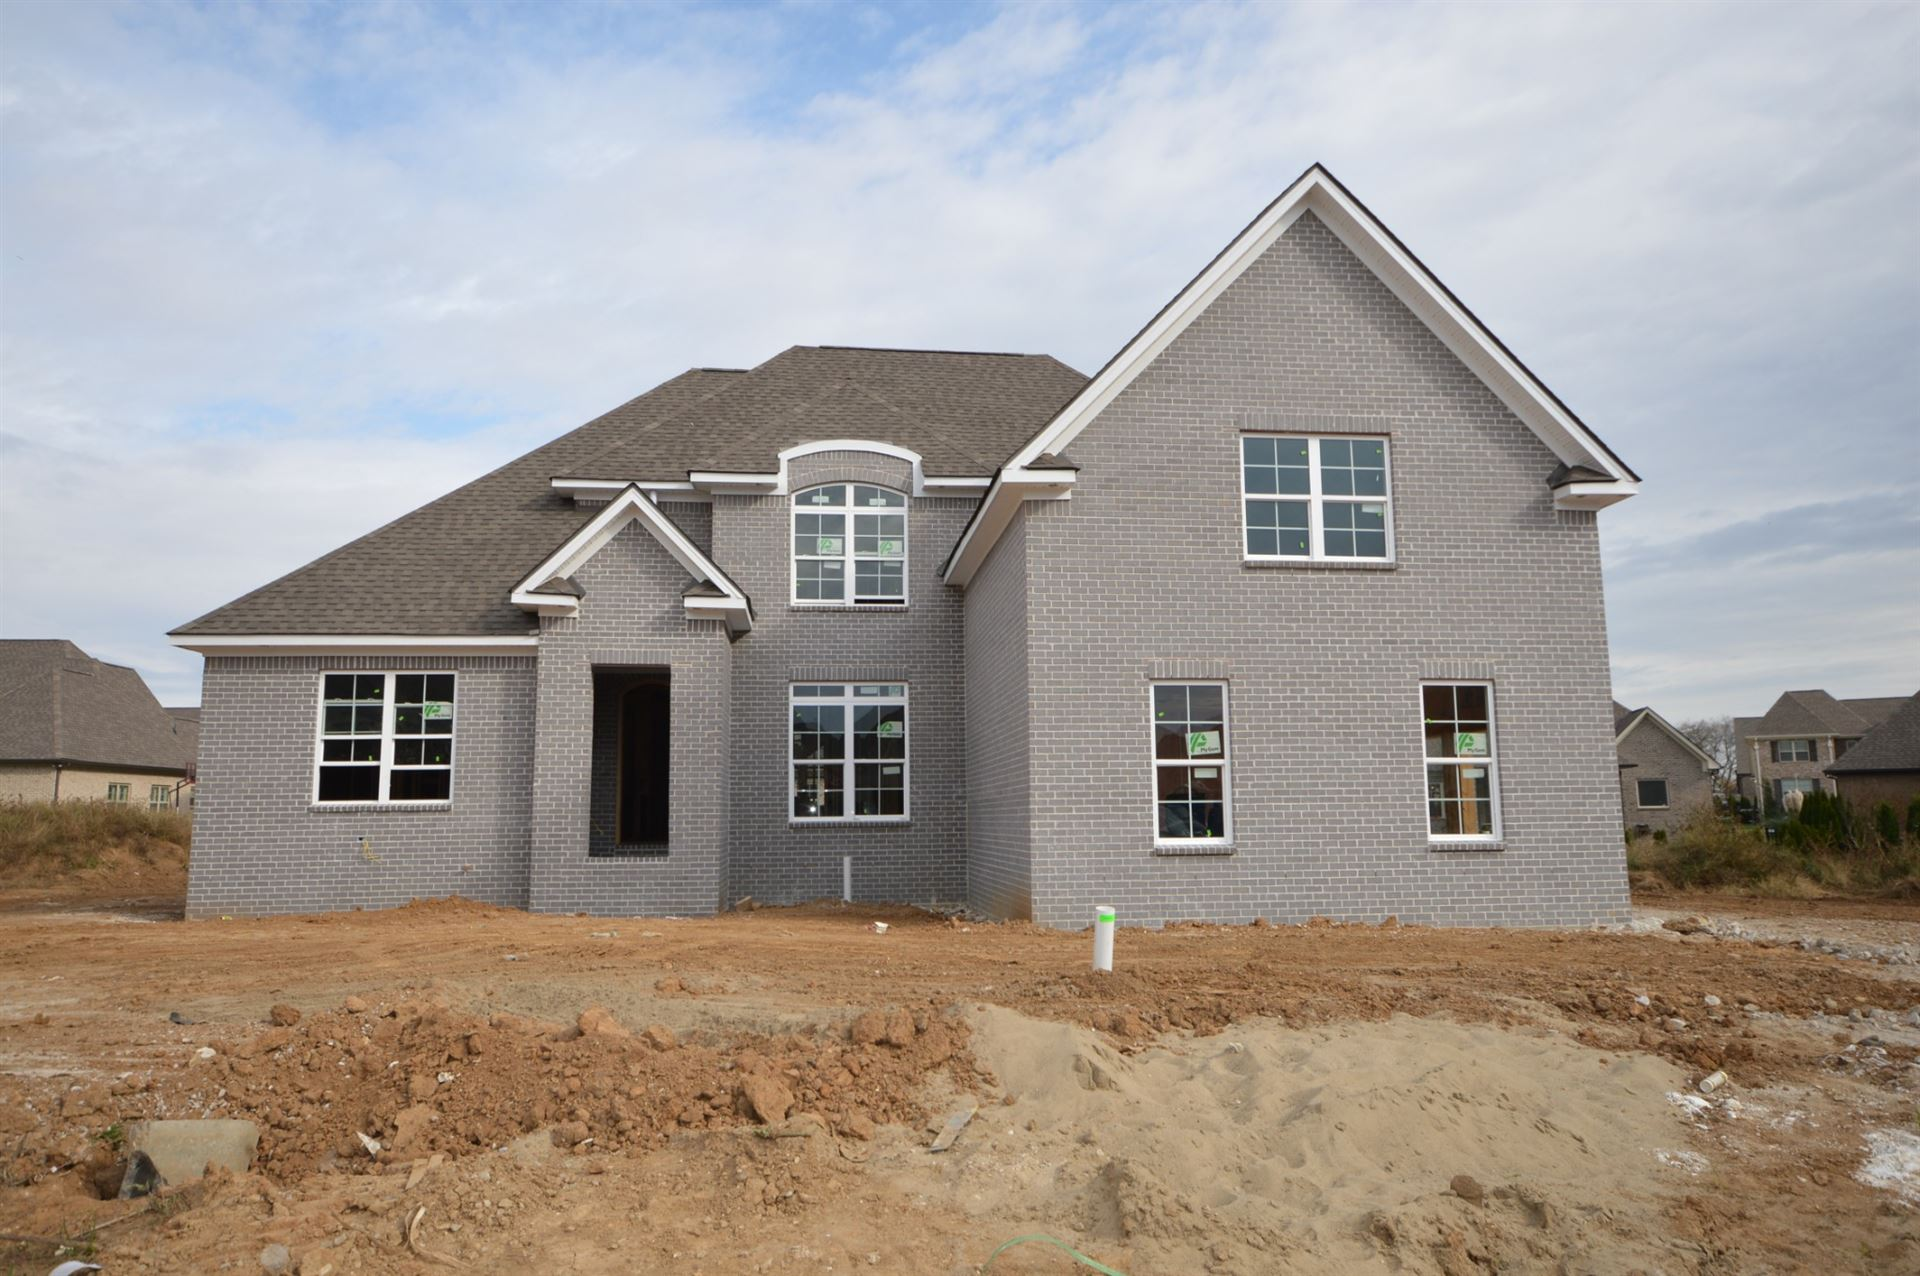 Photo of 104 Avocet Ct, Spring Hill, TN 37174 (MLS # 2188516)